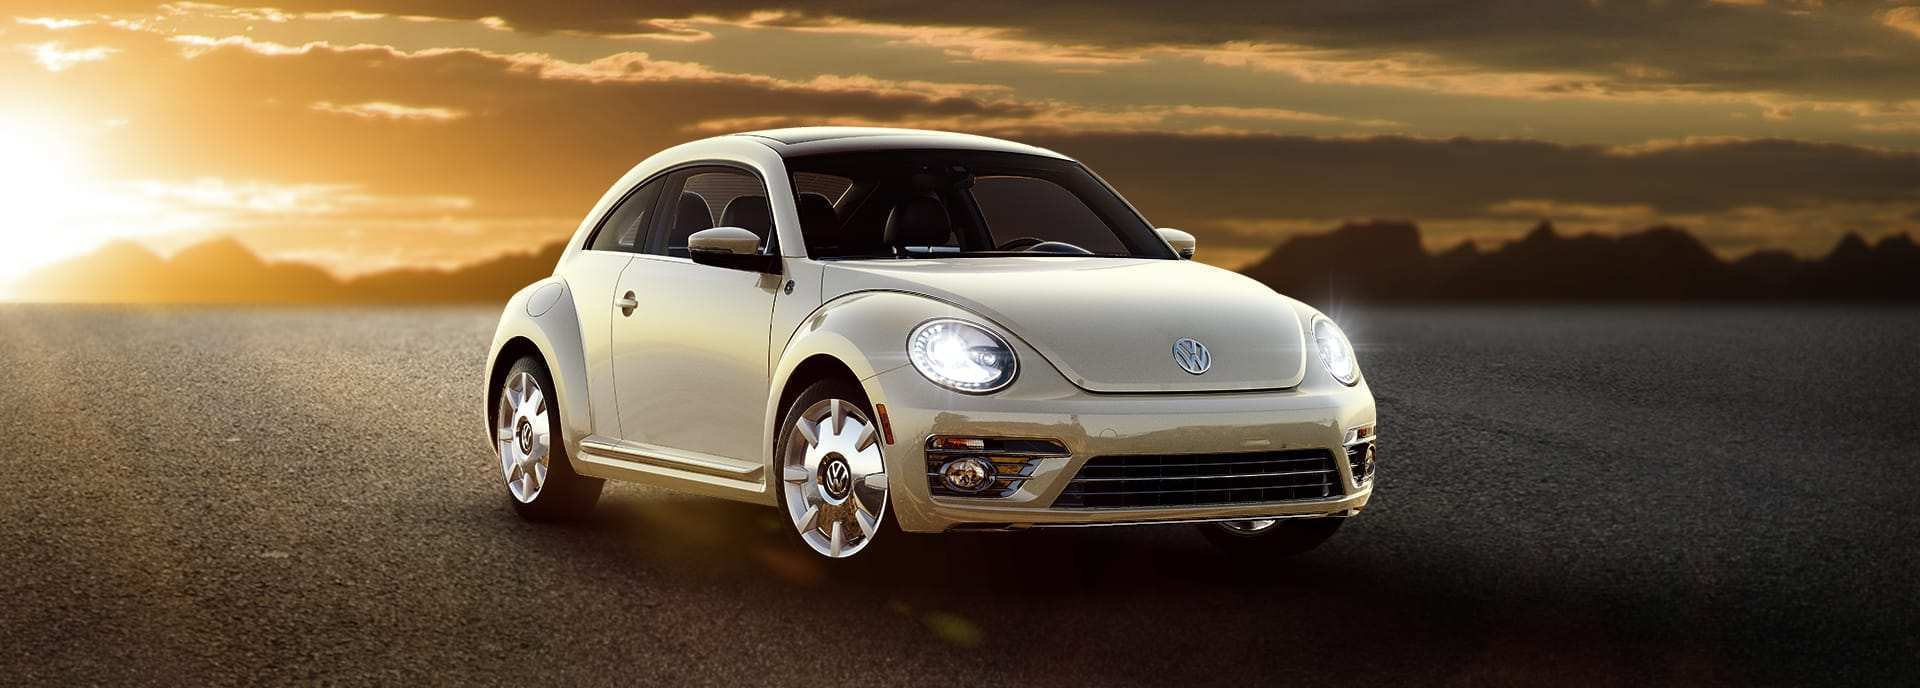 64 Gallery of The Volkswagen Canada 2019 Specs And Review Concept with The Volkswagen Canada 2019 Specs And Review